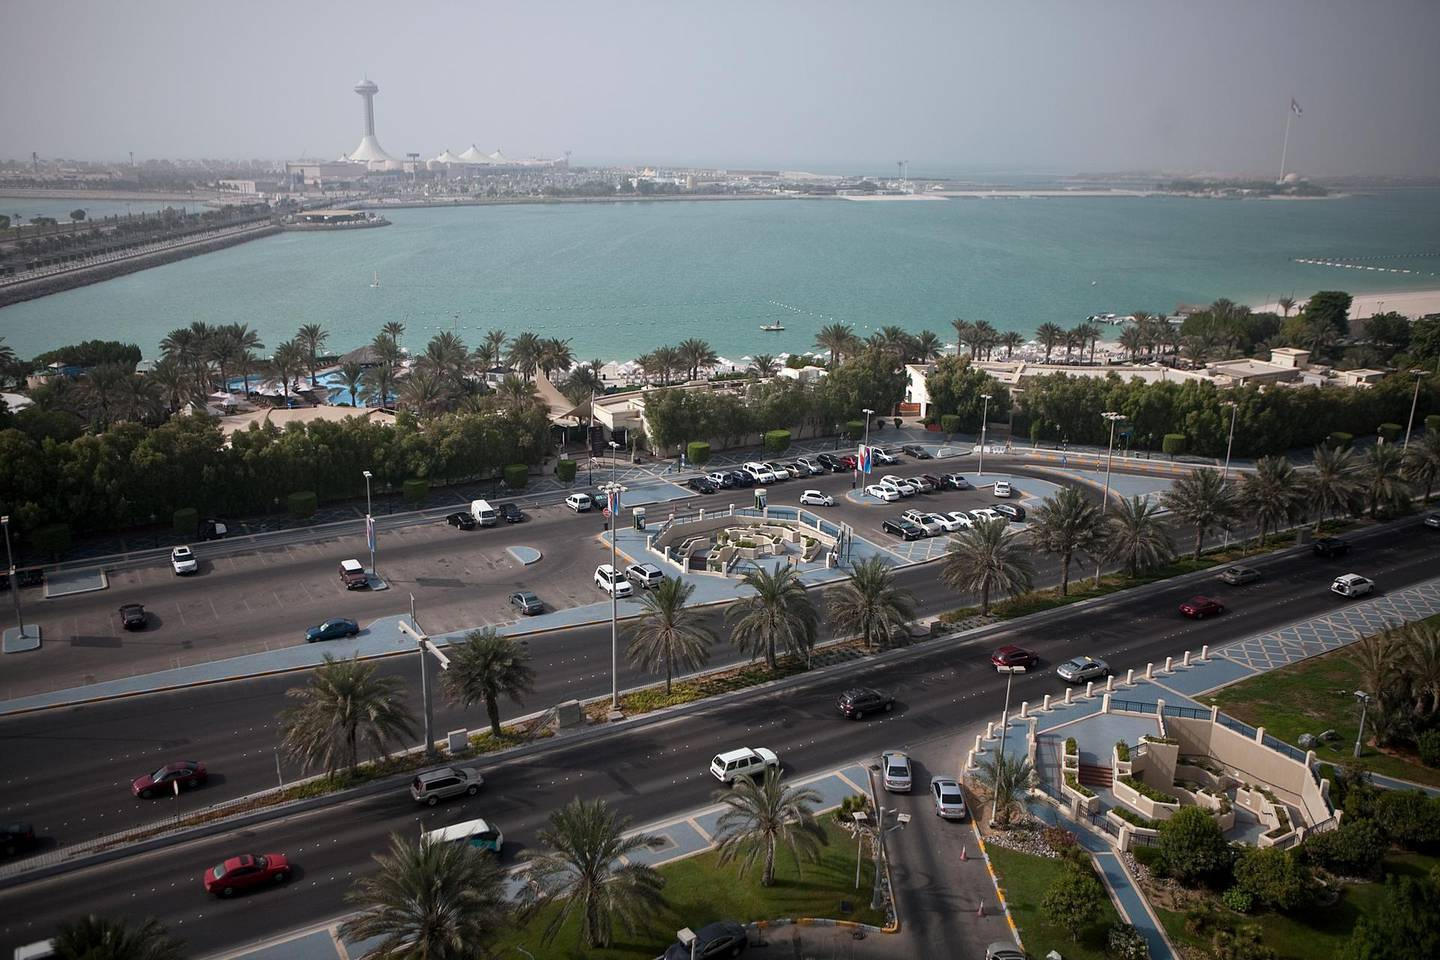 Abu Dhabi, United Arab Emirates, August 16, 2012:   View of the Corniche Road, the Hiltonia Beach Club and the Marina Mall in then background, as seen from the Hilton Abu Dhabi hotel on Thursday, August 15, 2012, at the hotel's Corniche Road location in Abu Dhabi. (Silvia Razgova / The National)